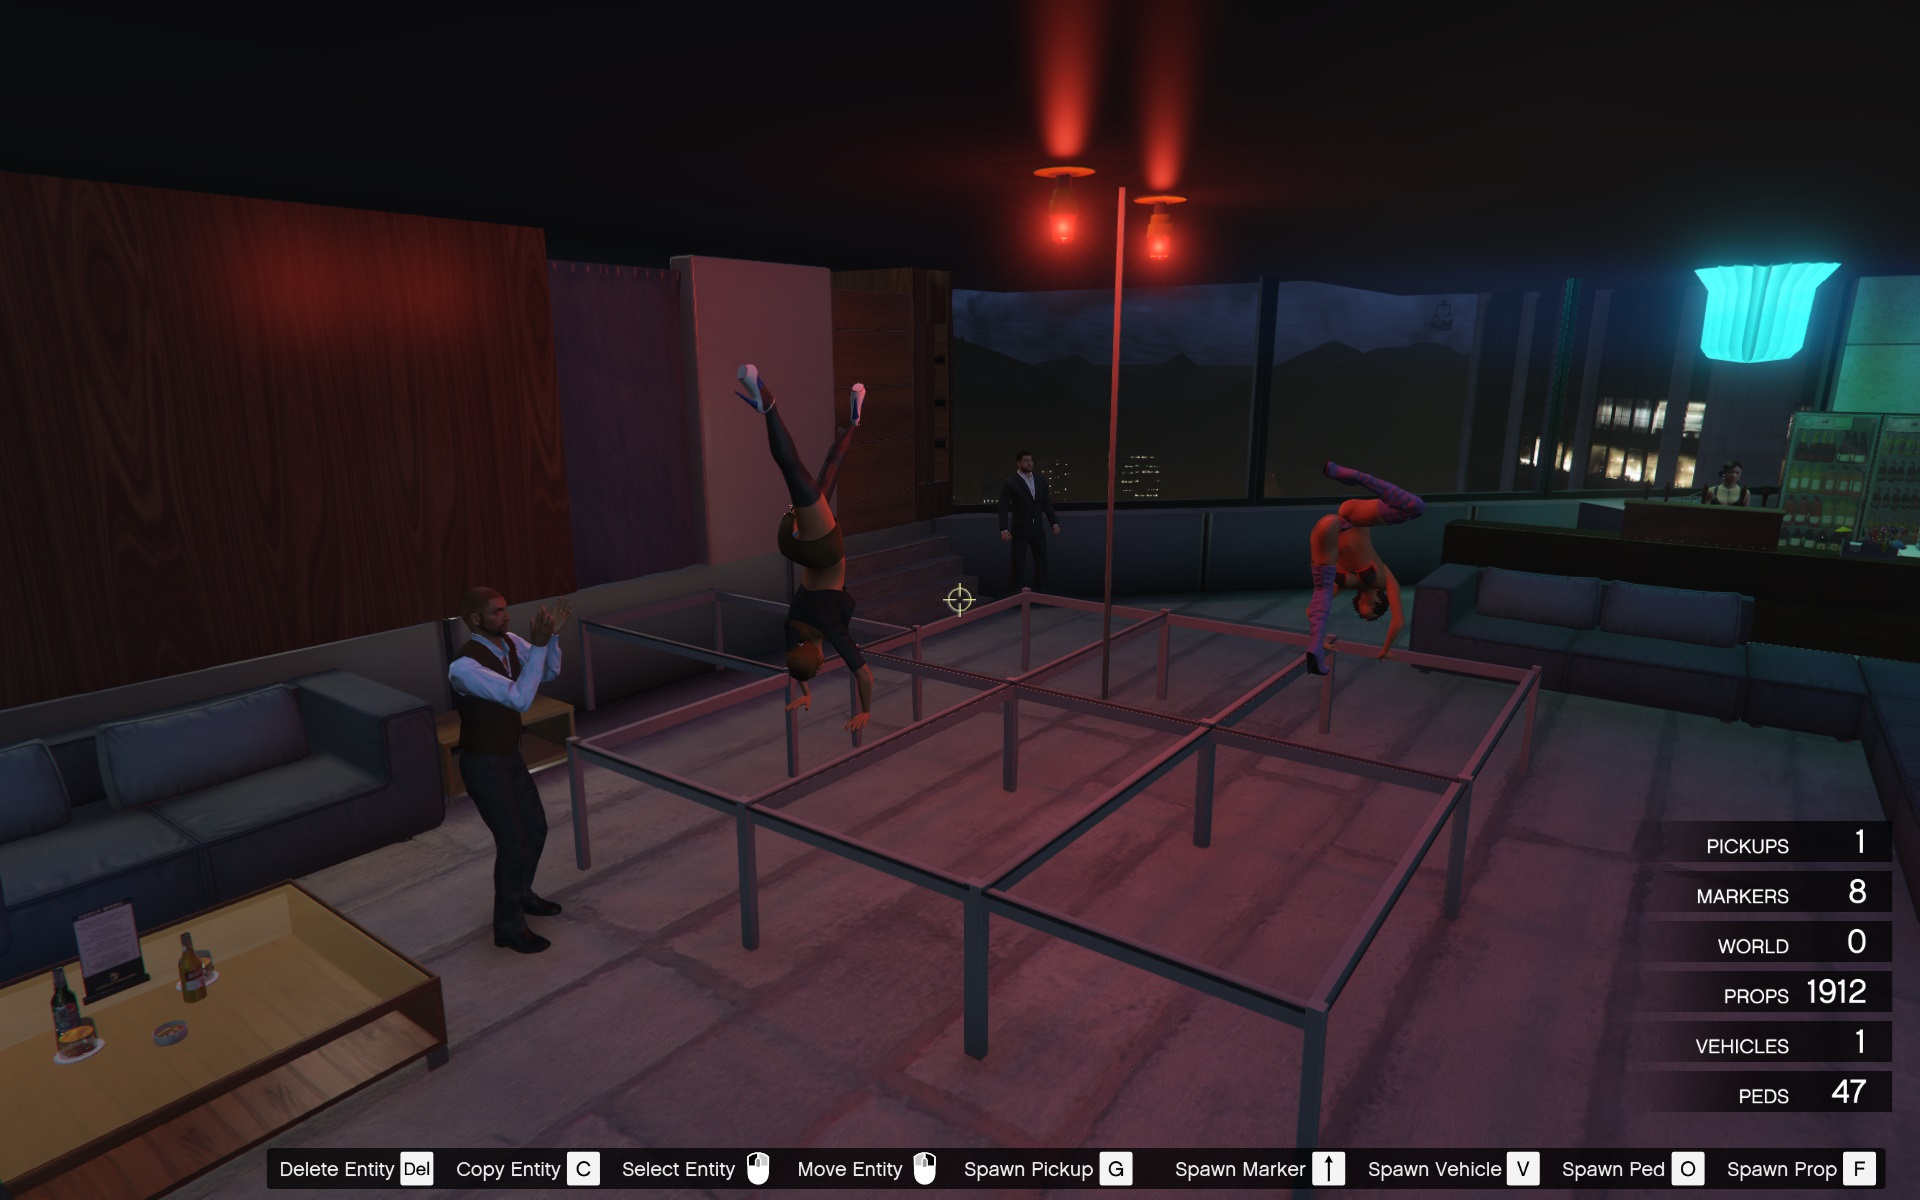 Strip Club Conference Room